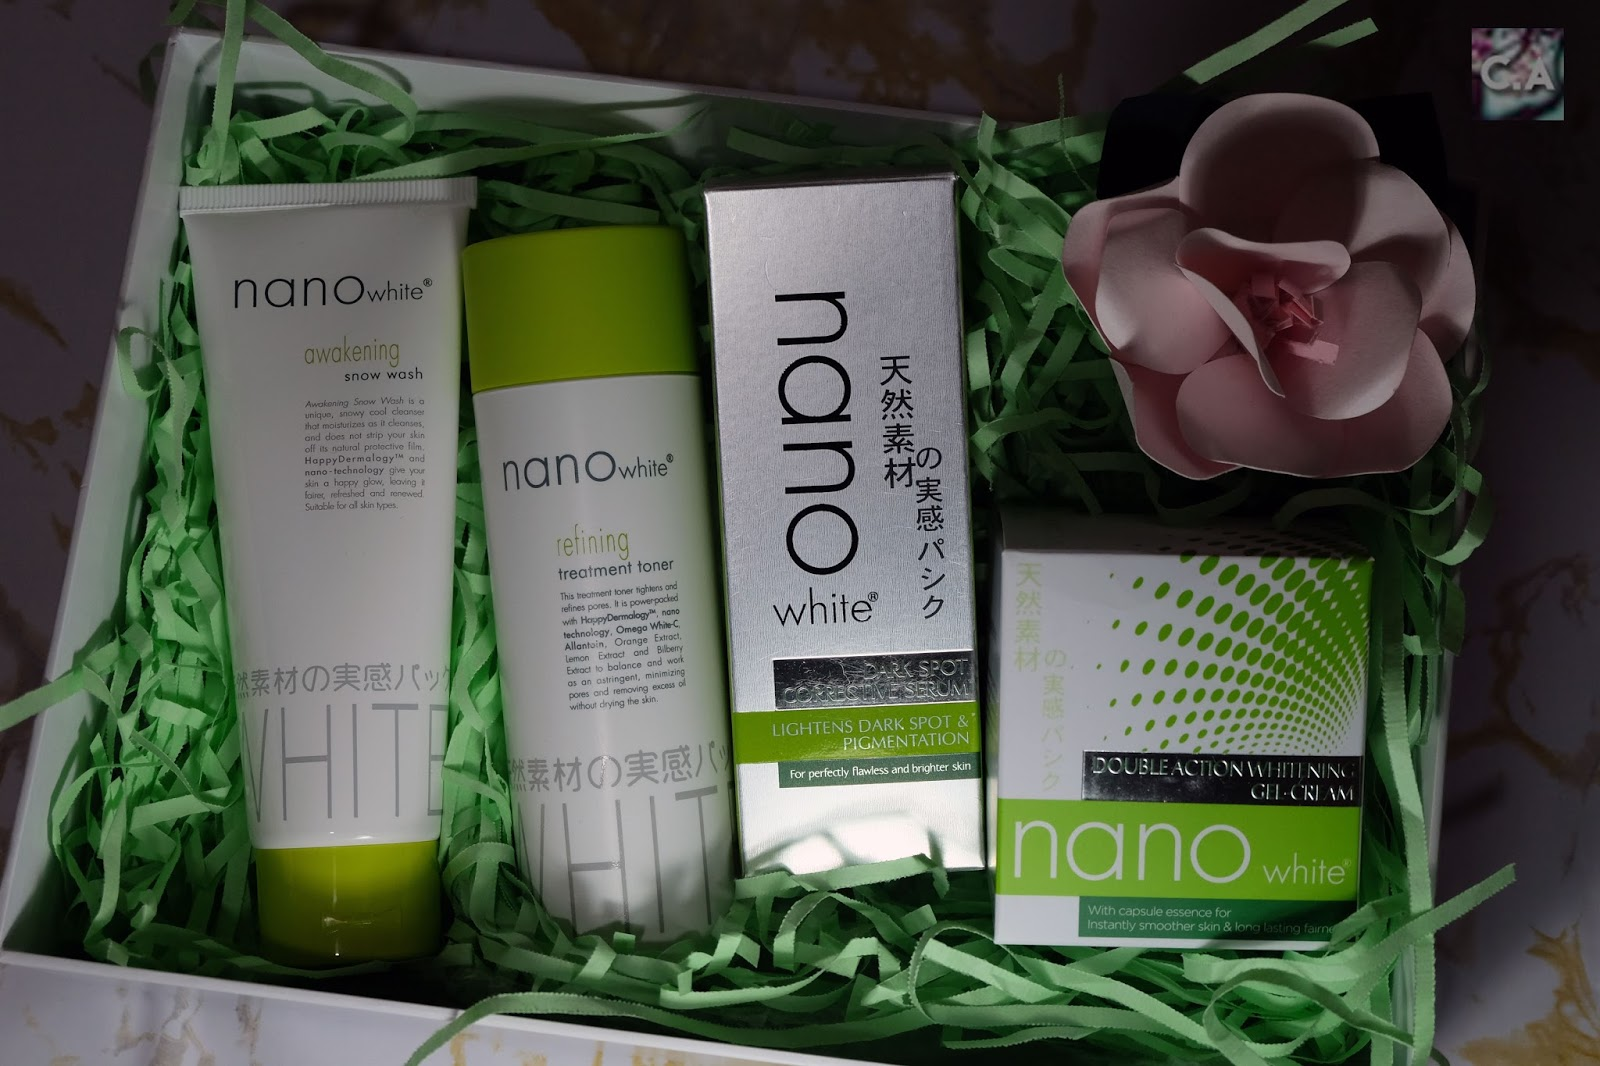 Complete Set Of Nano White Products But The Newest One Is Dark Spot Corrective Serum